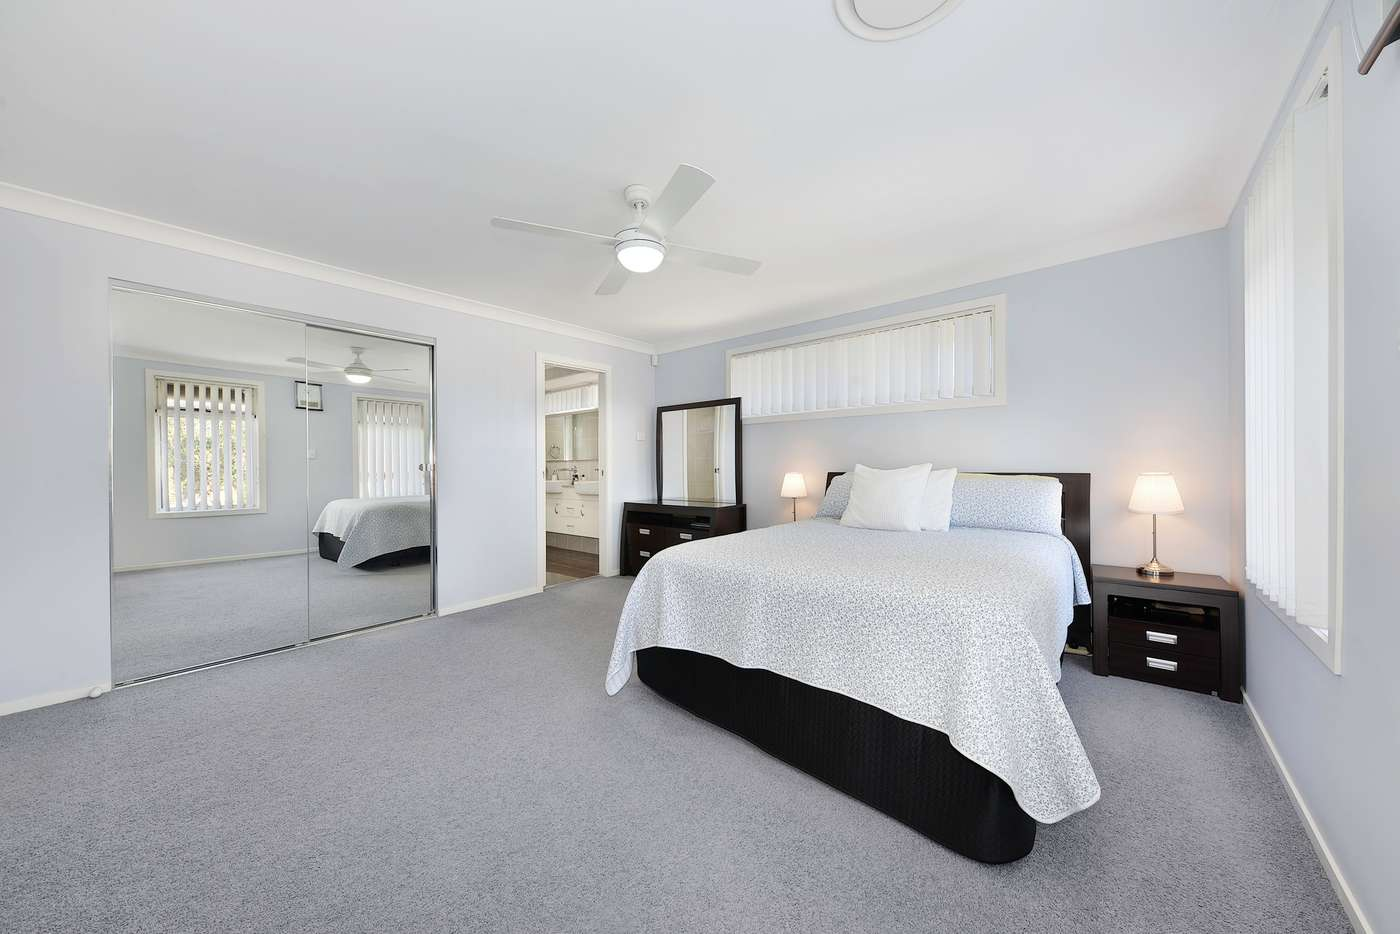 Fifth view of Homely house listing, 284 Beauchamp Road, Matraville NSW 2036